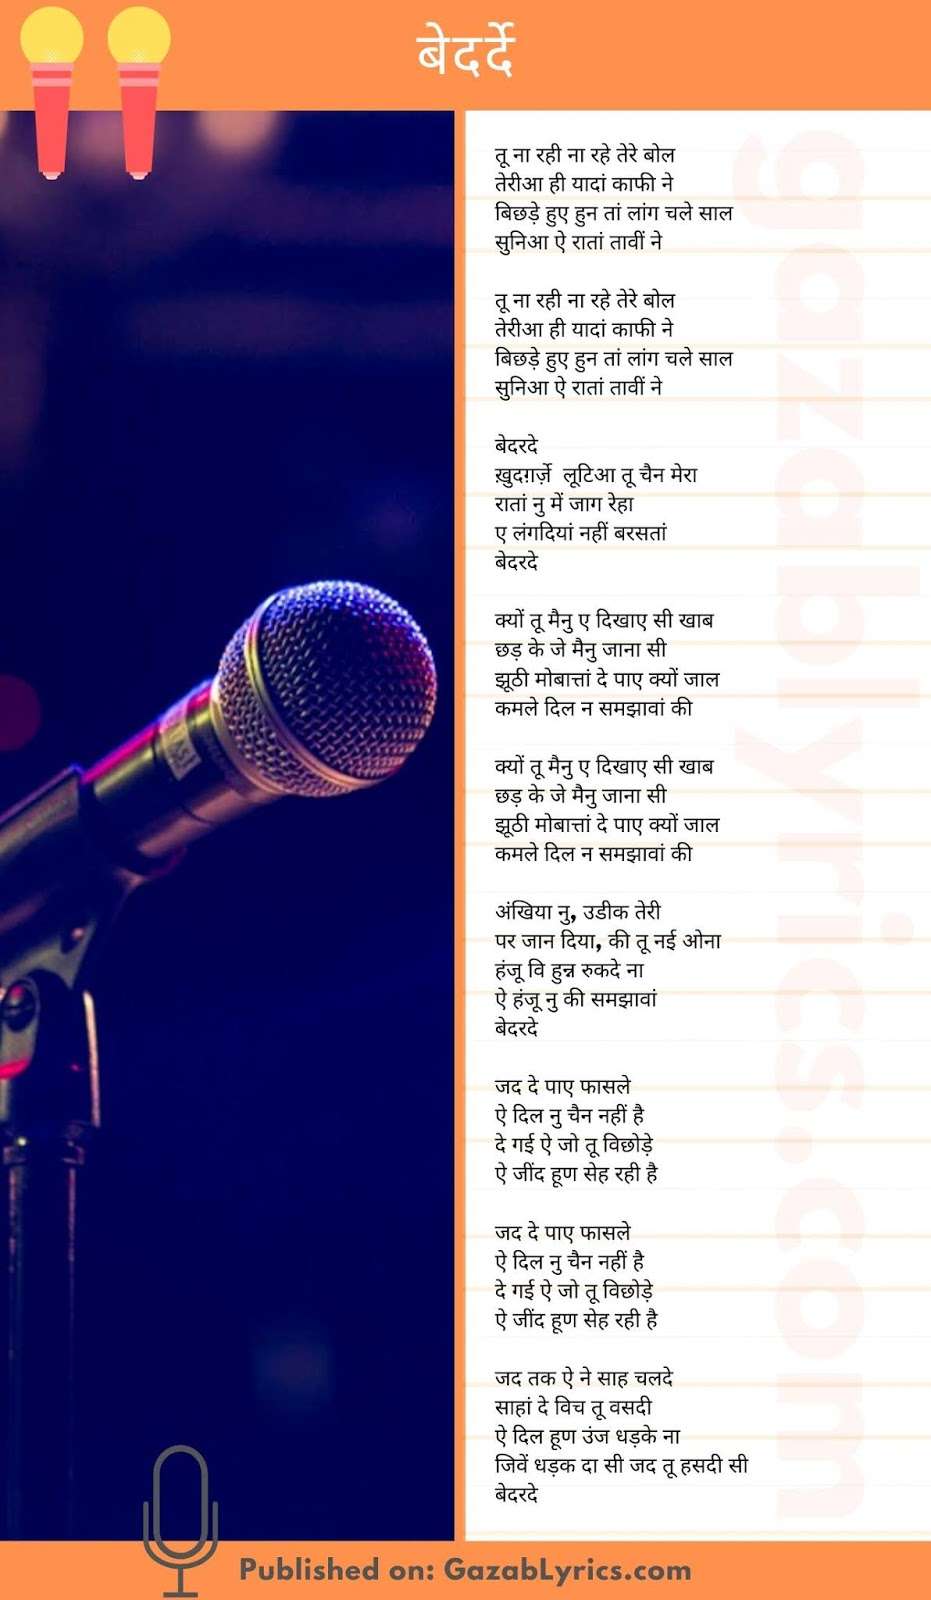 Bedarde song lyrics image